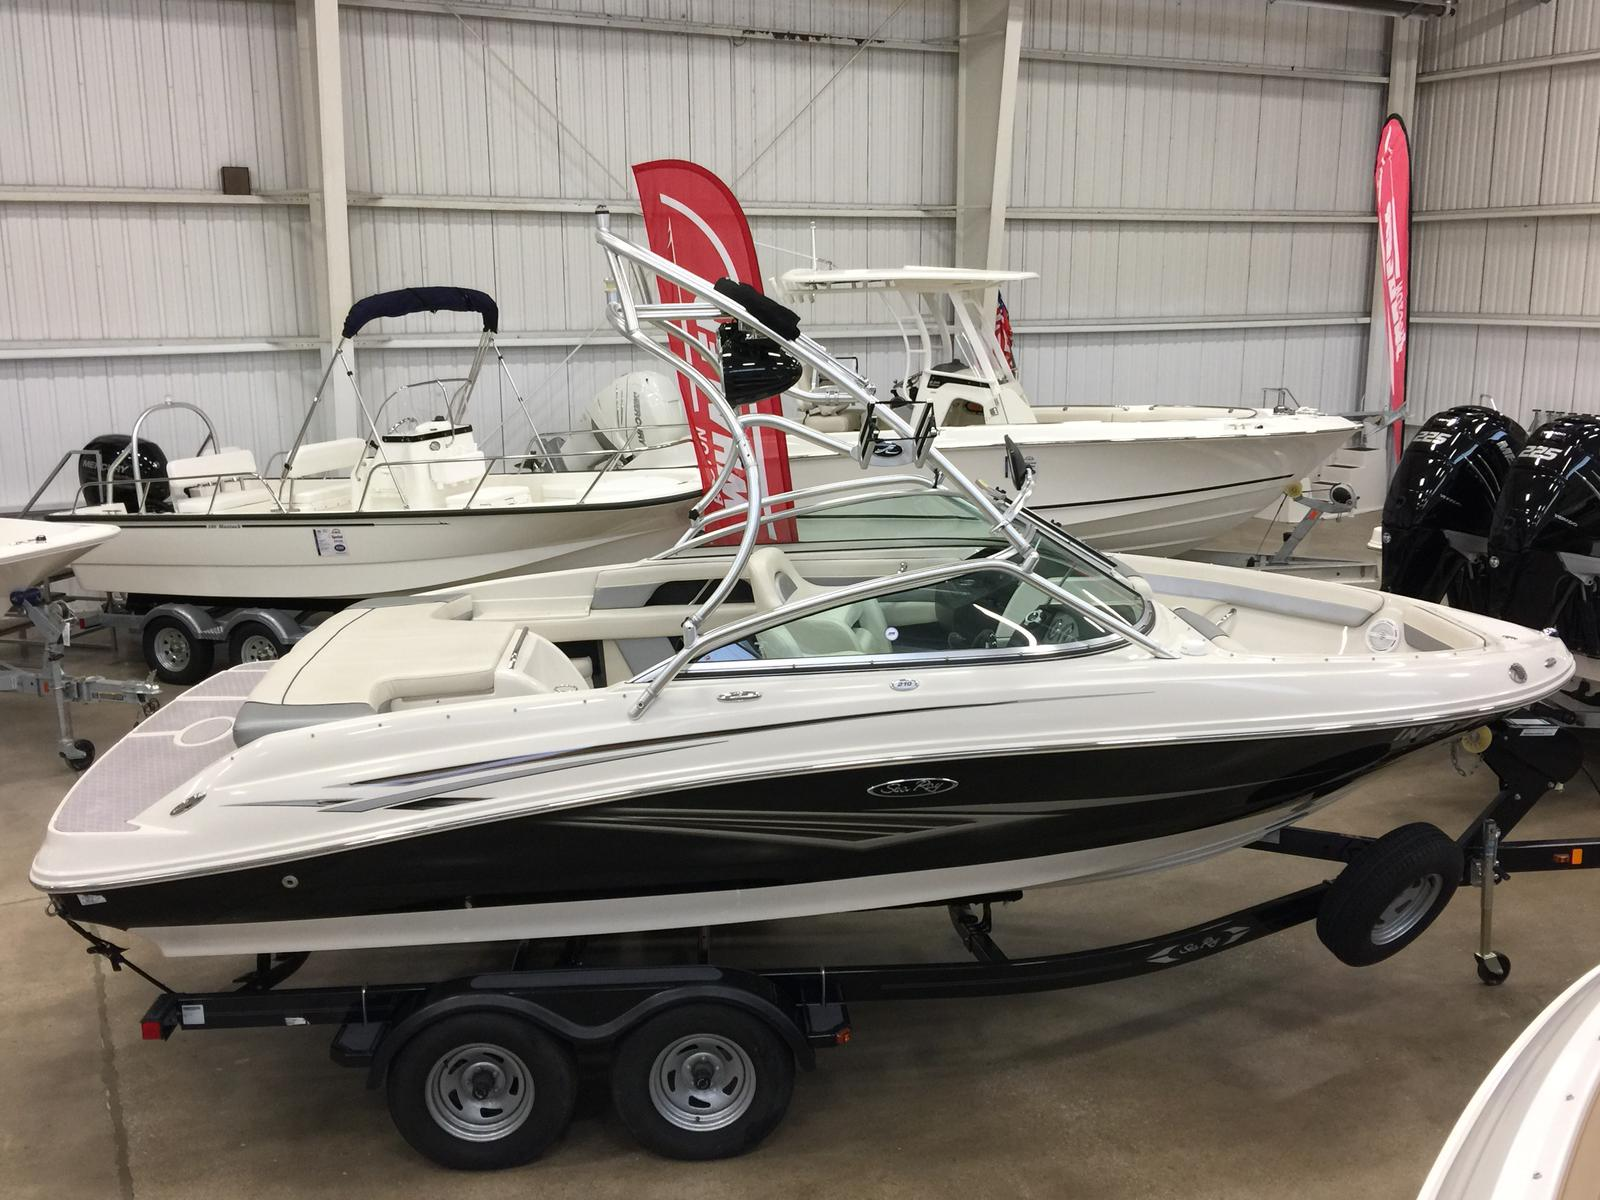 Sea Ray 210 Select - NEW ARRIVAL!!!!